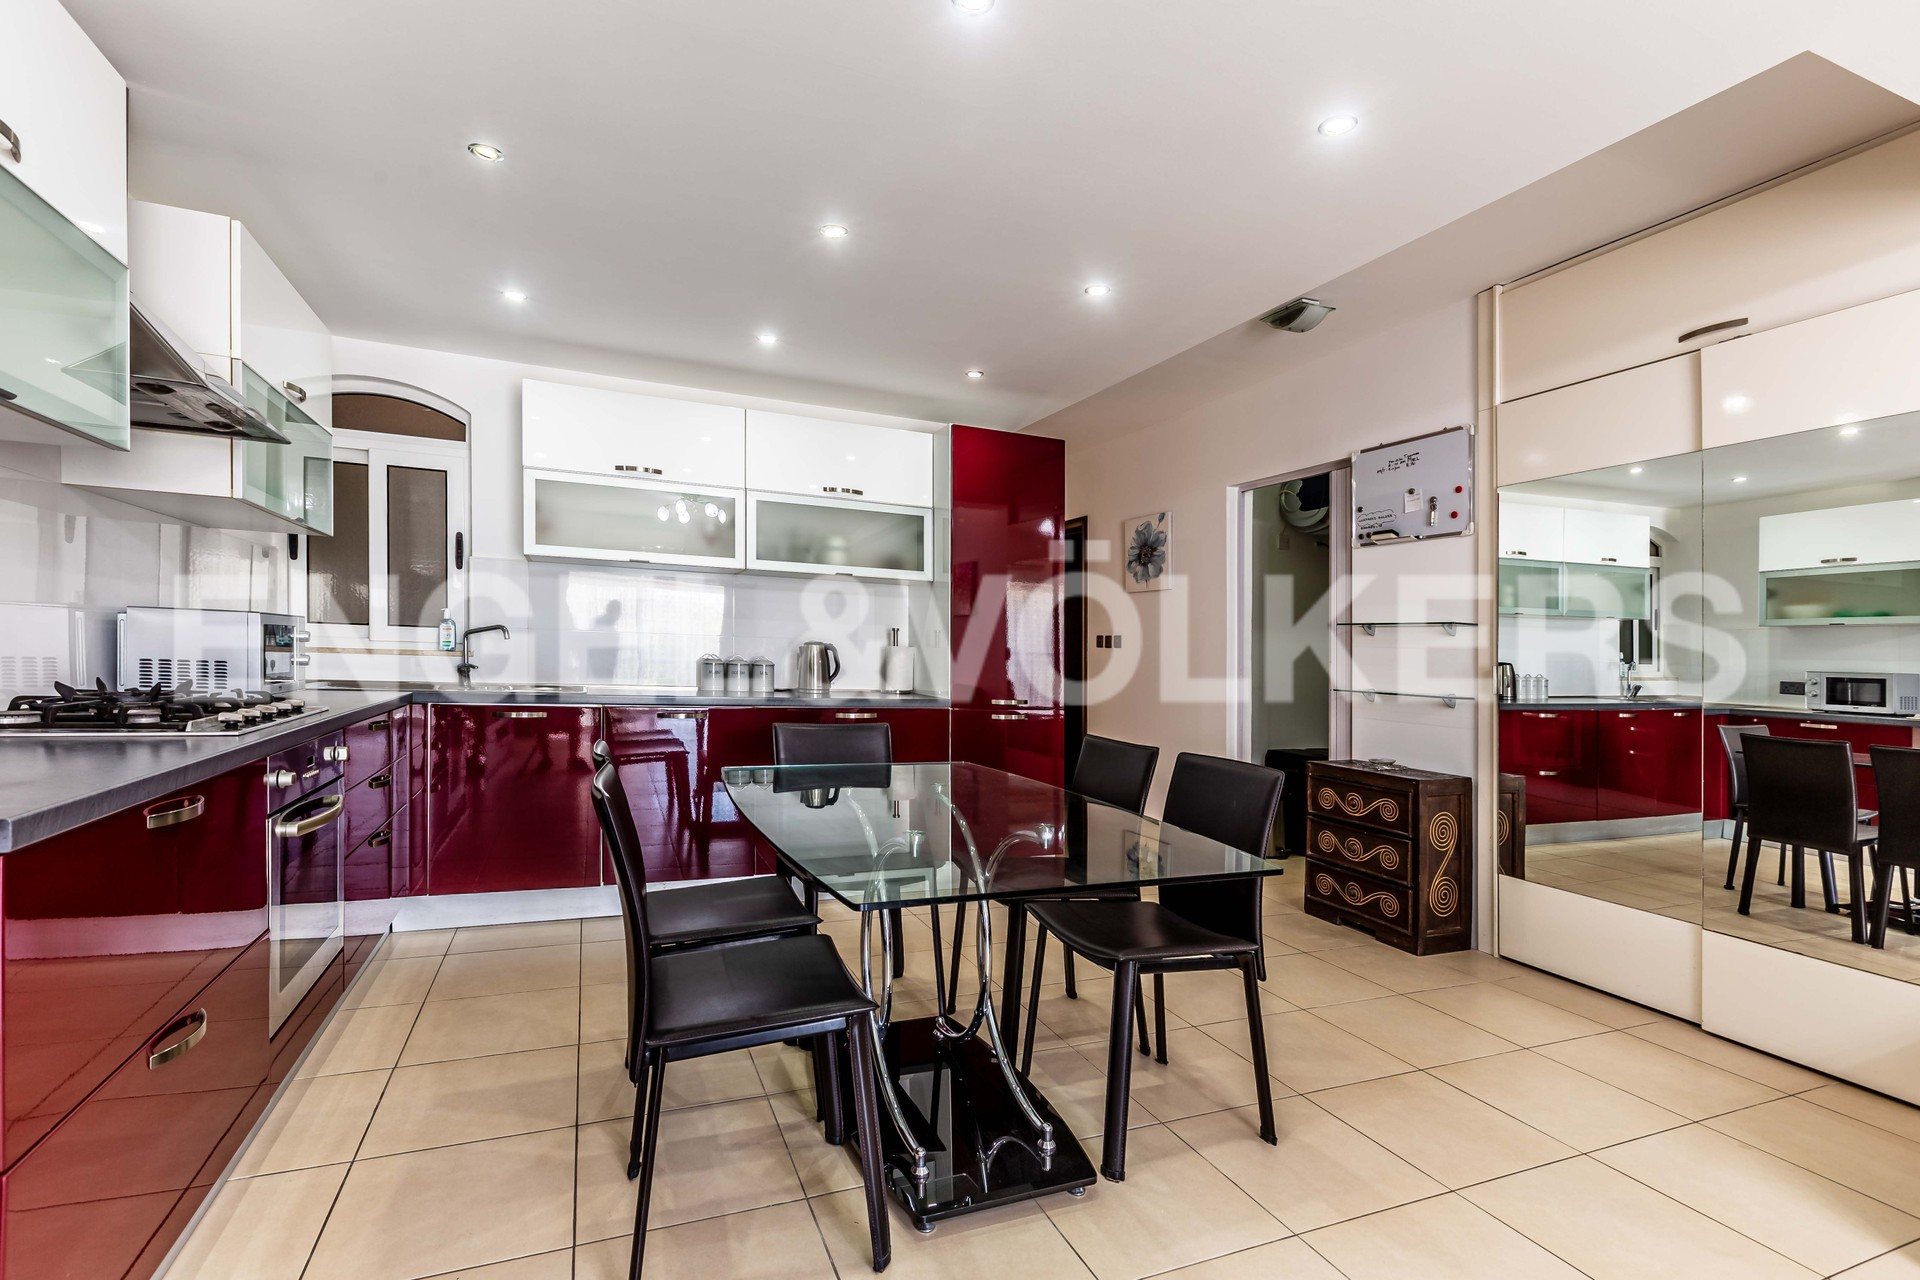 Apartment in Swieqi - Kitchen/Dining Area